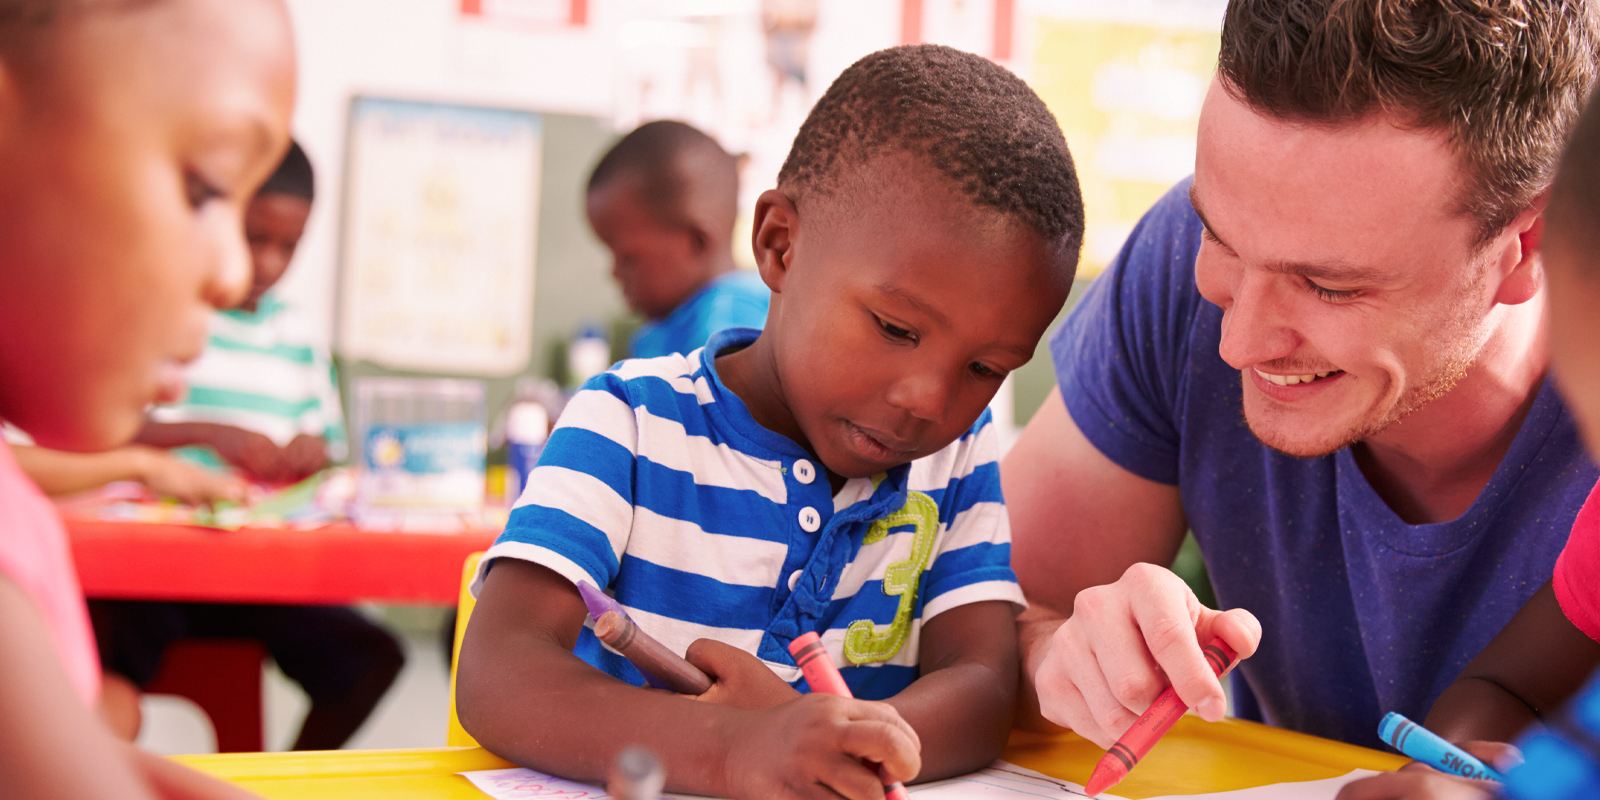 An image of small nursery kids colouring in crayons